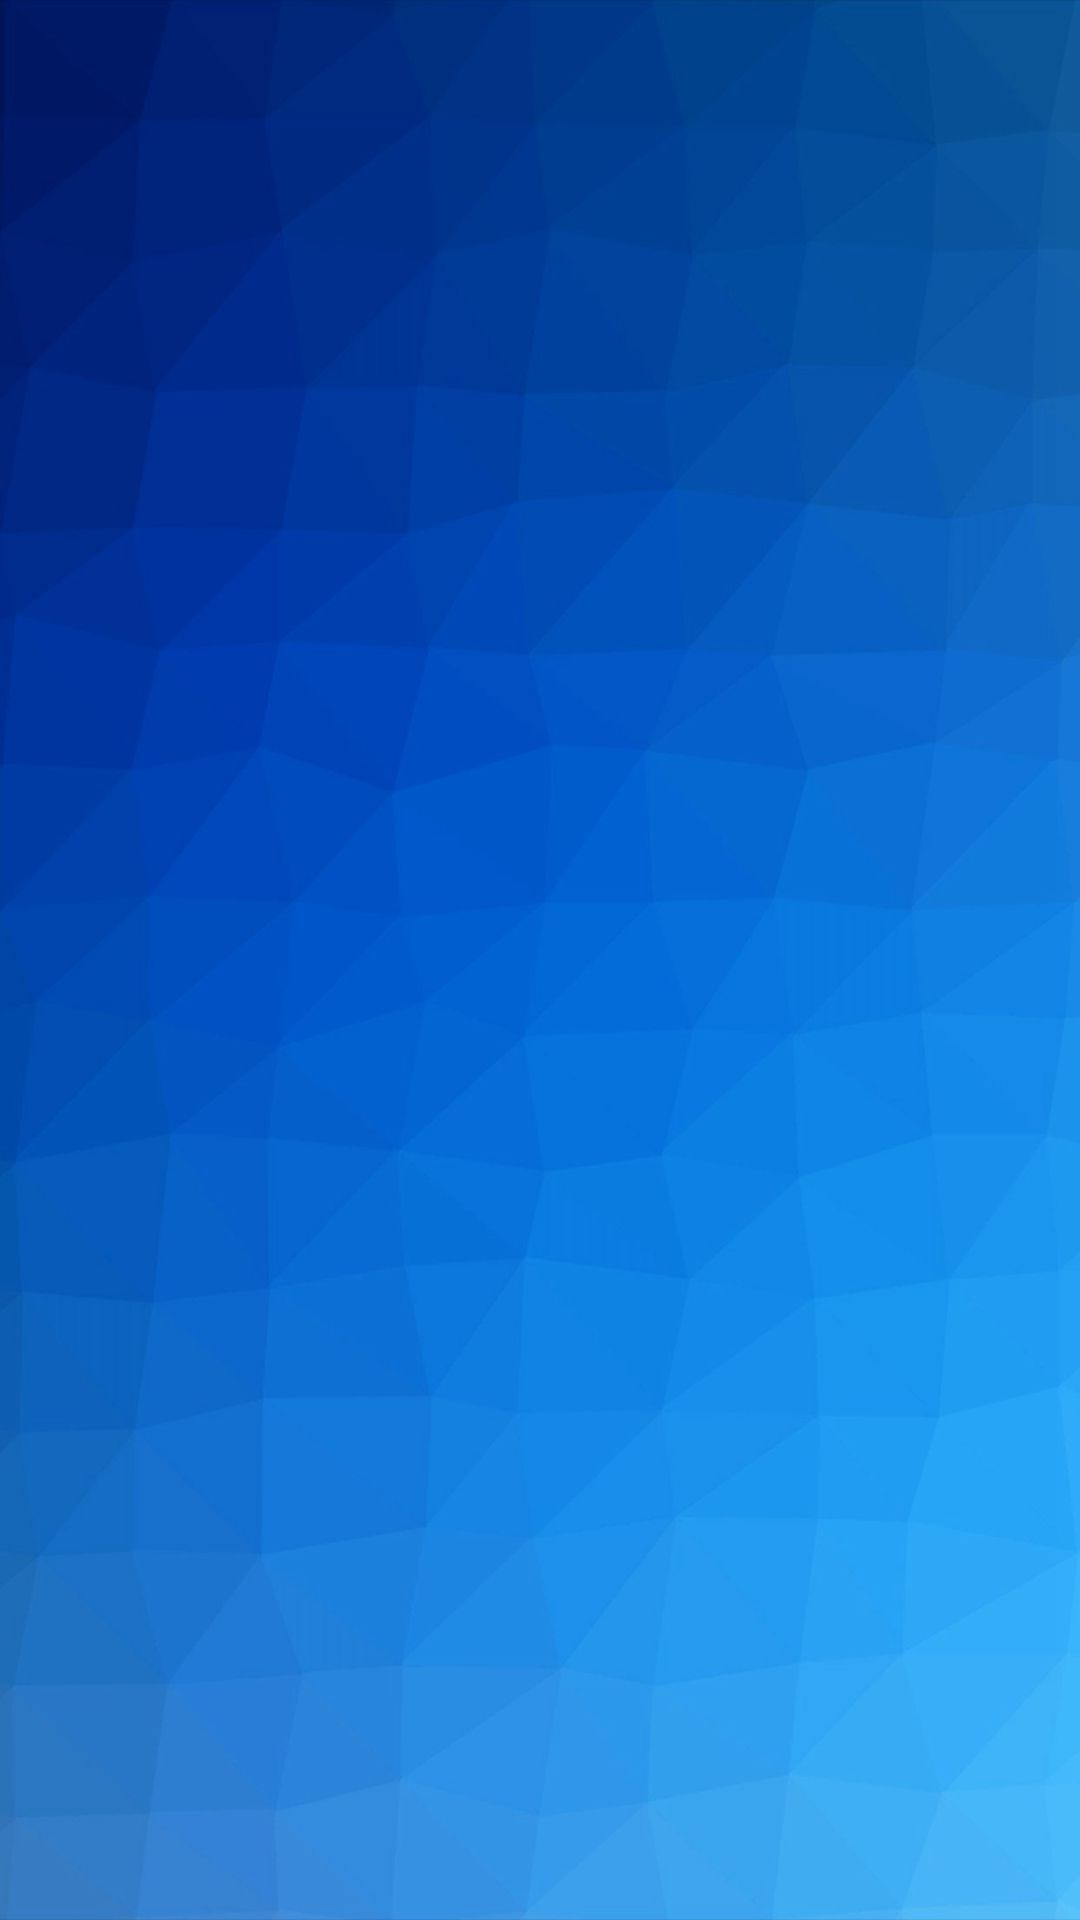 Blue Polygon Art Abstract Pattern Iphone 6 Plus Wallpaper Polygon Art Abstract Abstract Pattern